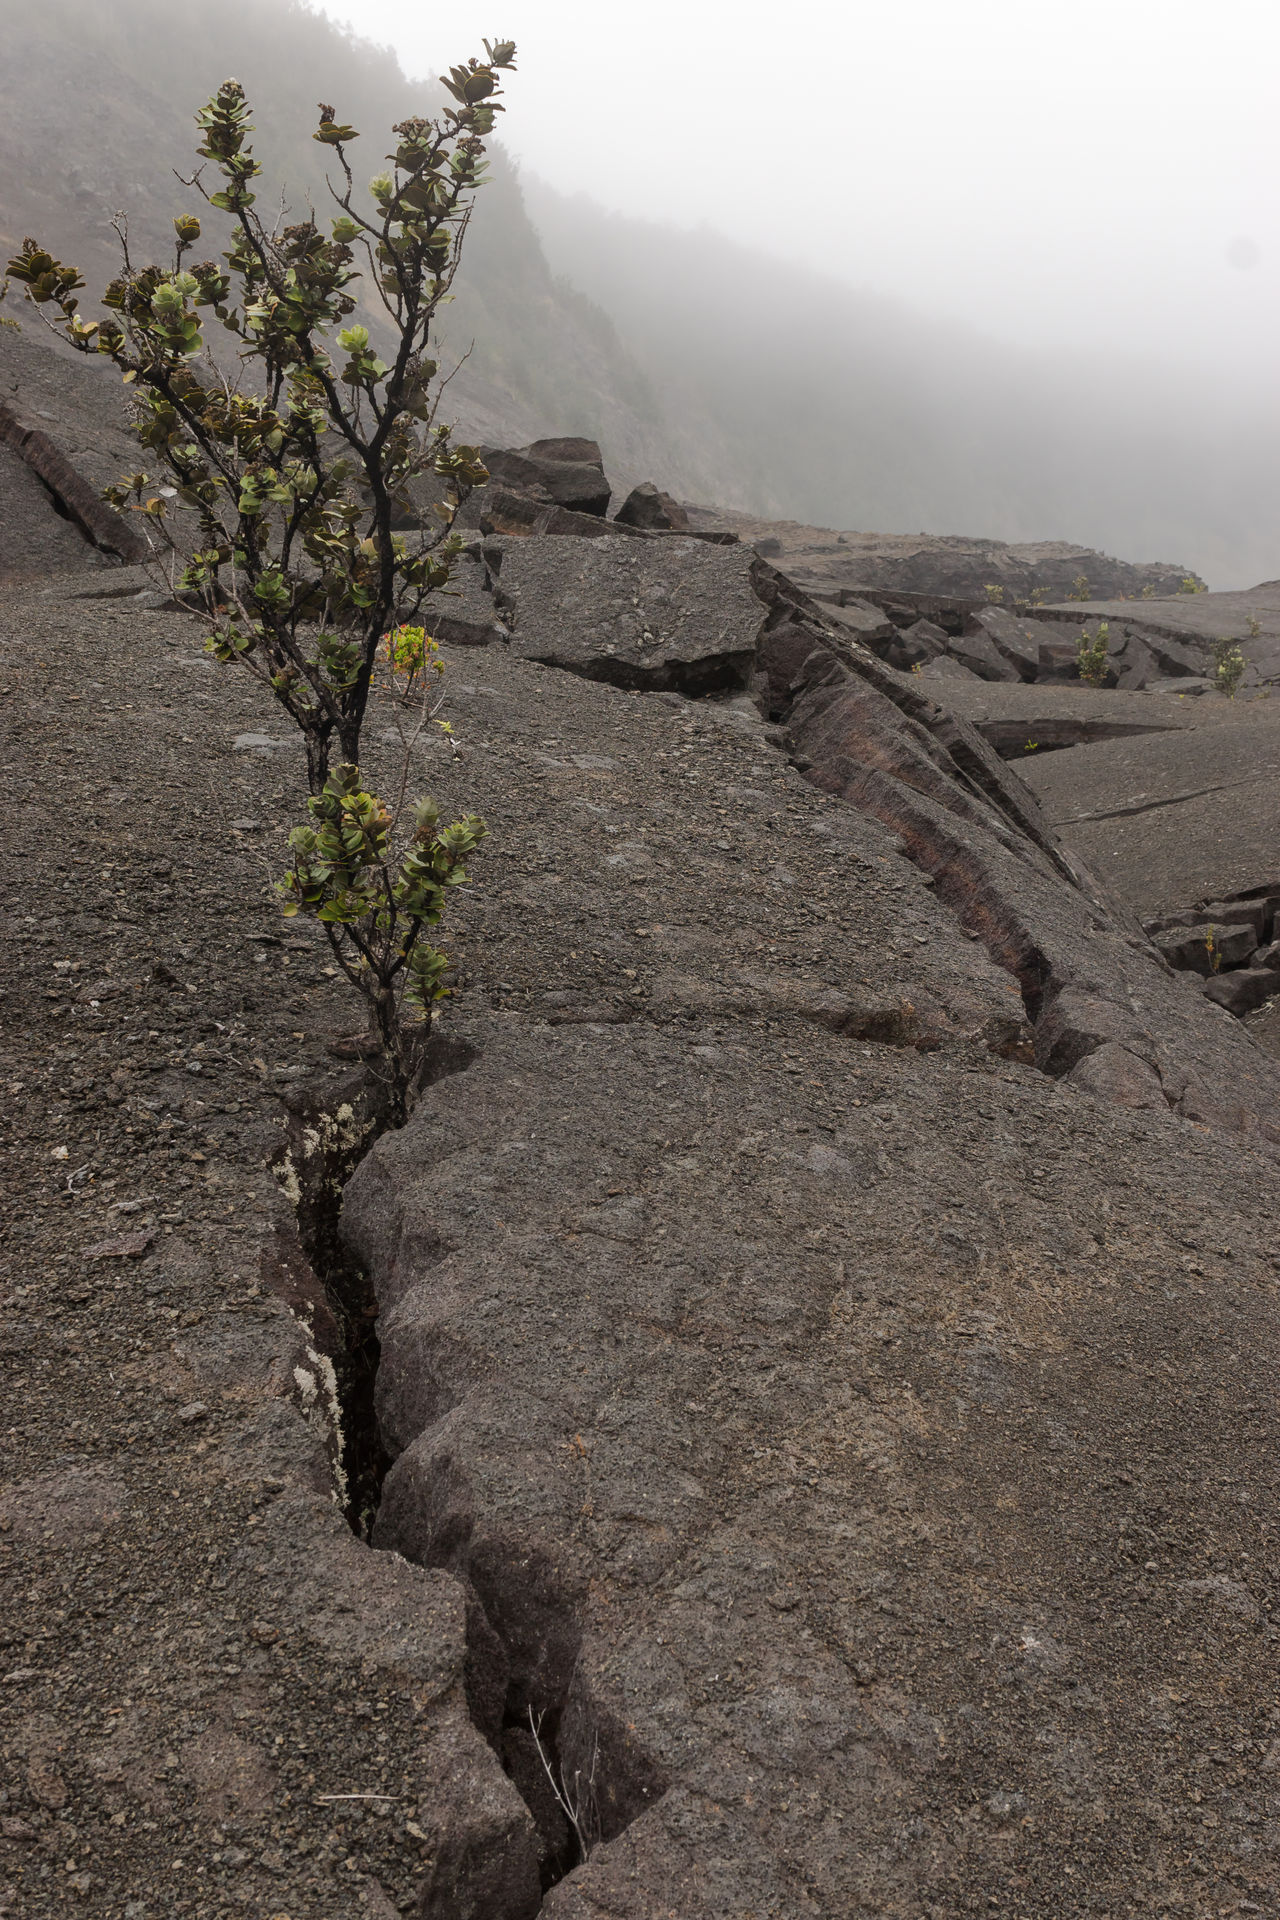 Beauty In Nature Big Island Crack Day Fog Gritty Hawaii Landscape Lava Lonely Nature No People Outdoors Physical Geography Resist Rock Scenics Sky Tranquil Scene Tranquility Volcano National Park